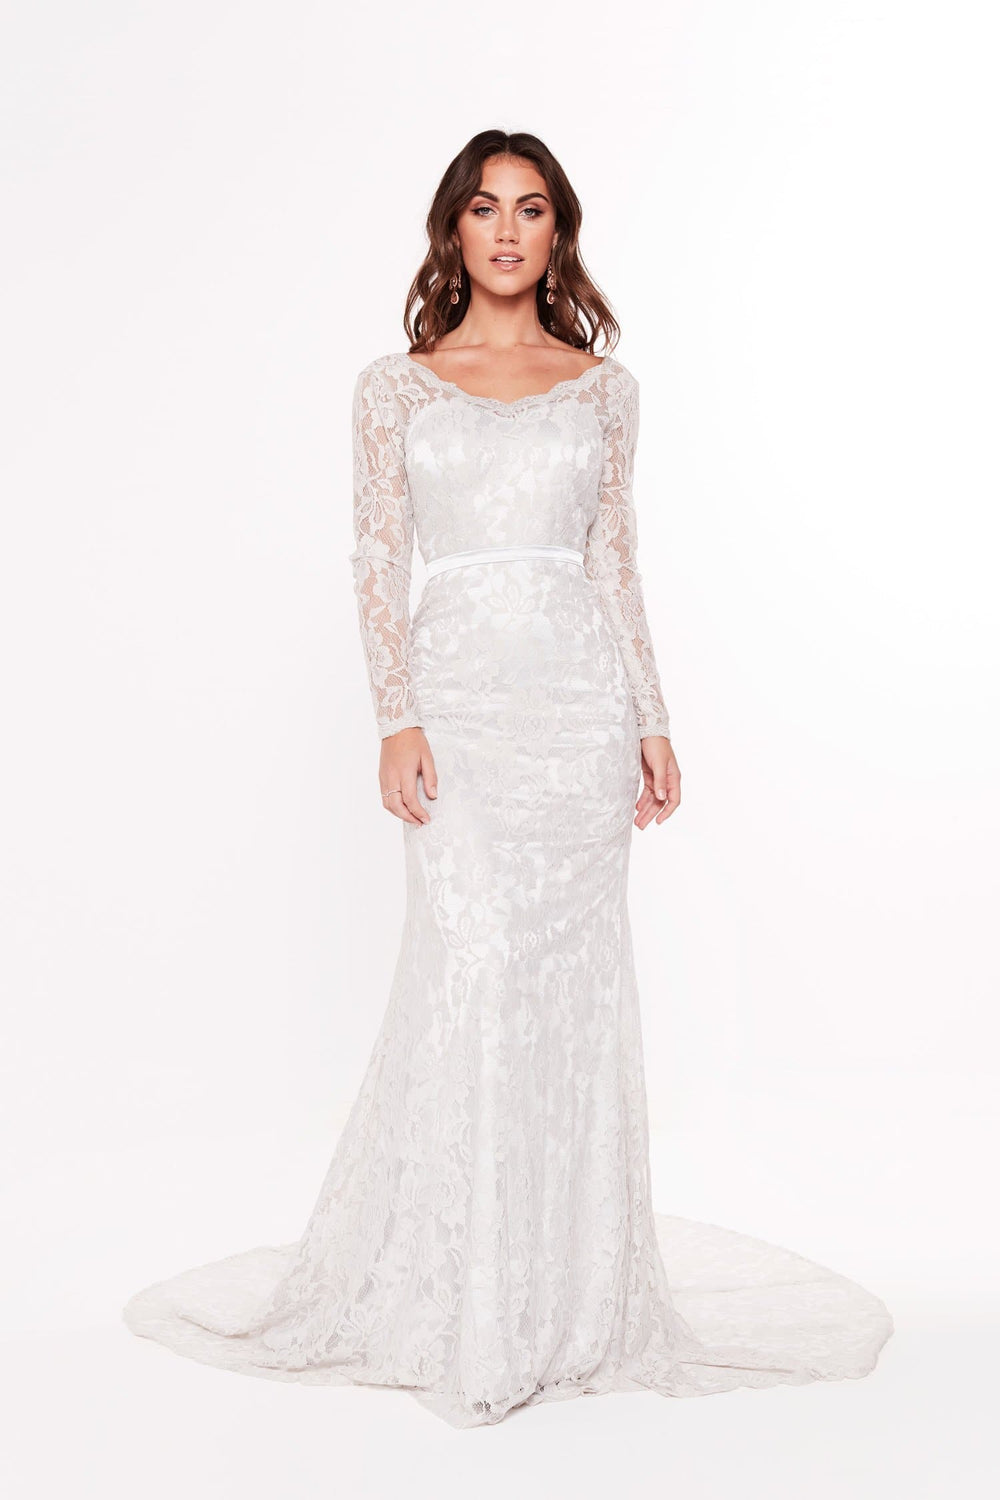 A&N Fatima - Silver Lace Gown with Long Sleeves and Mermaid Train